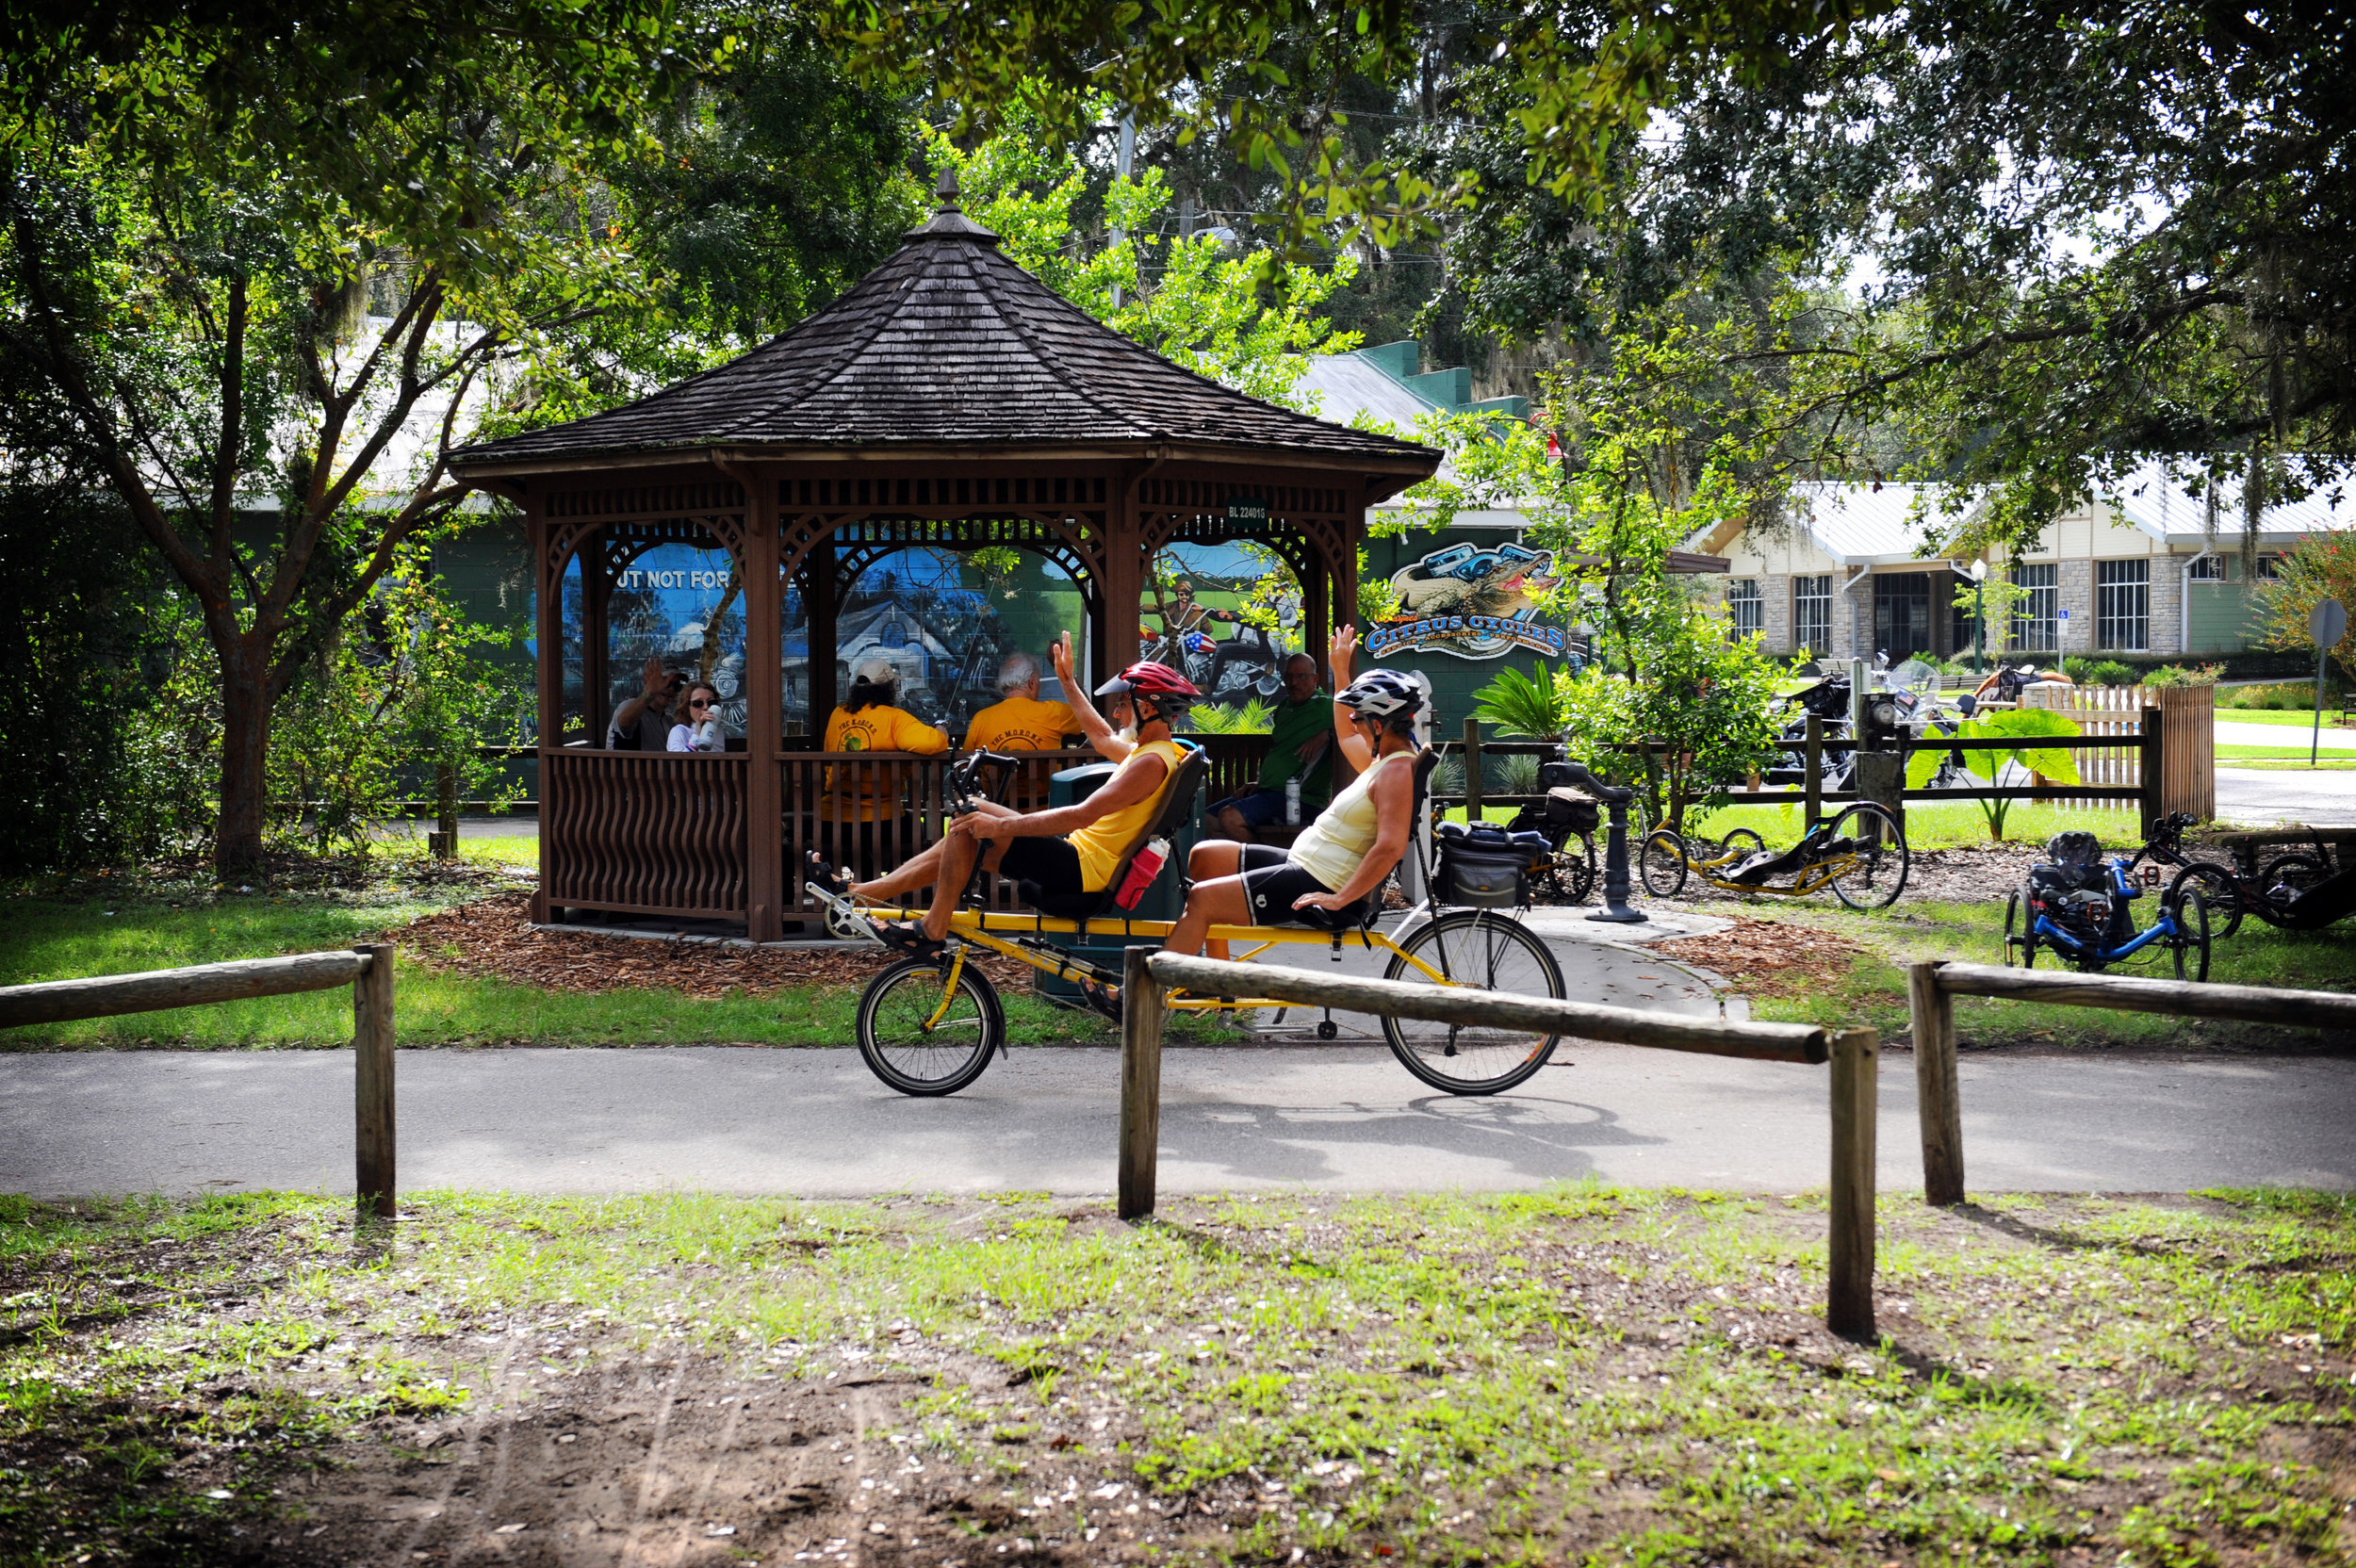 Friendy-Cyclists-on-Withlacoochee-State-Trail-2012-by-CvB-Photography-8091.jpg